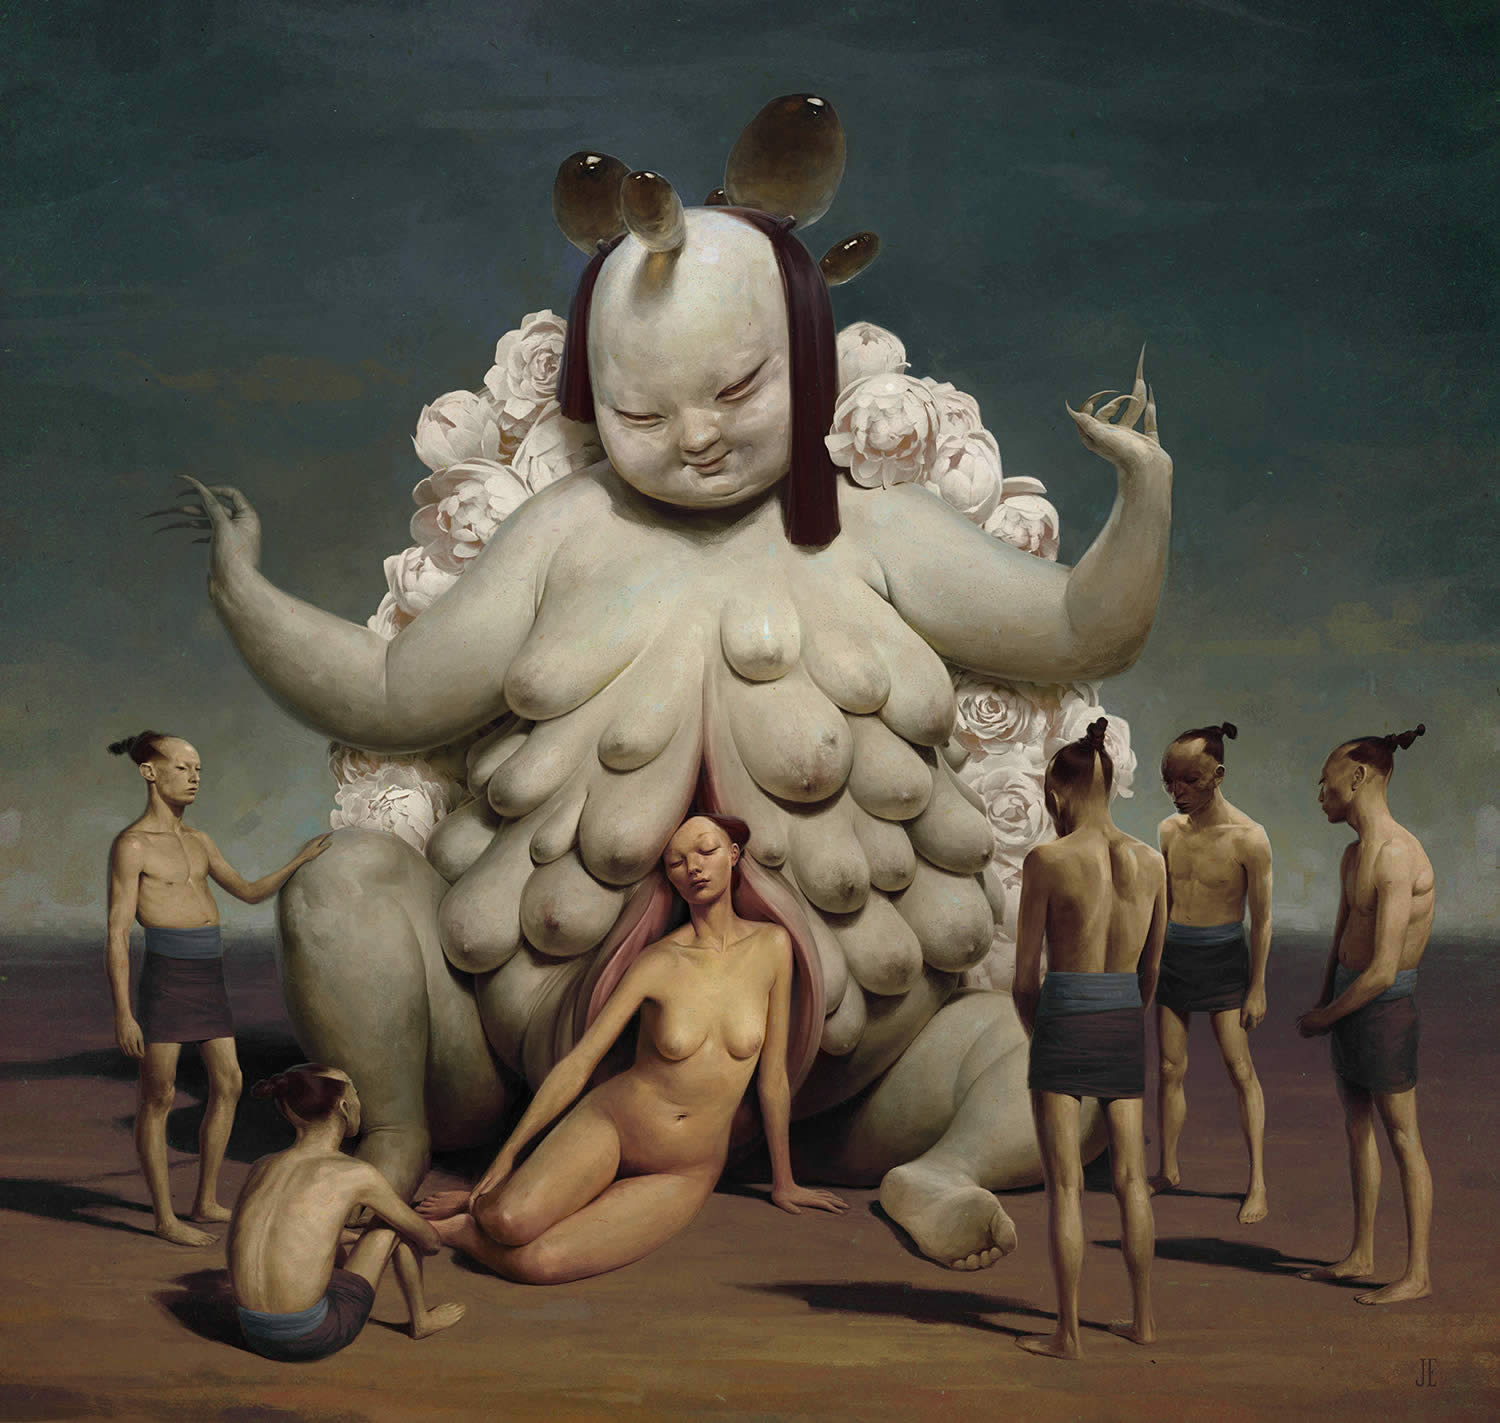 ronation, painting of strange women with many breasts